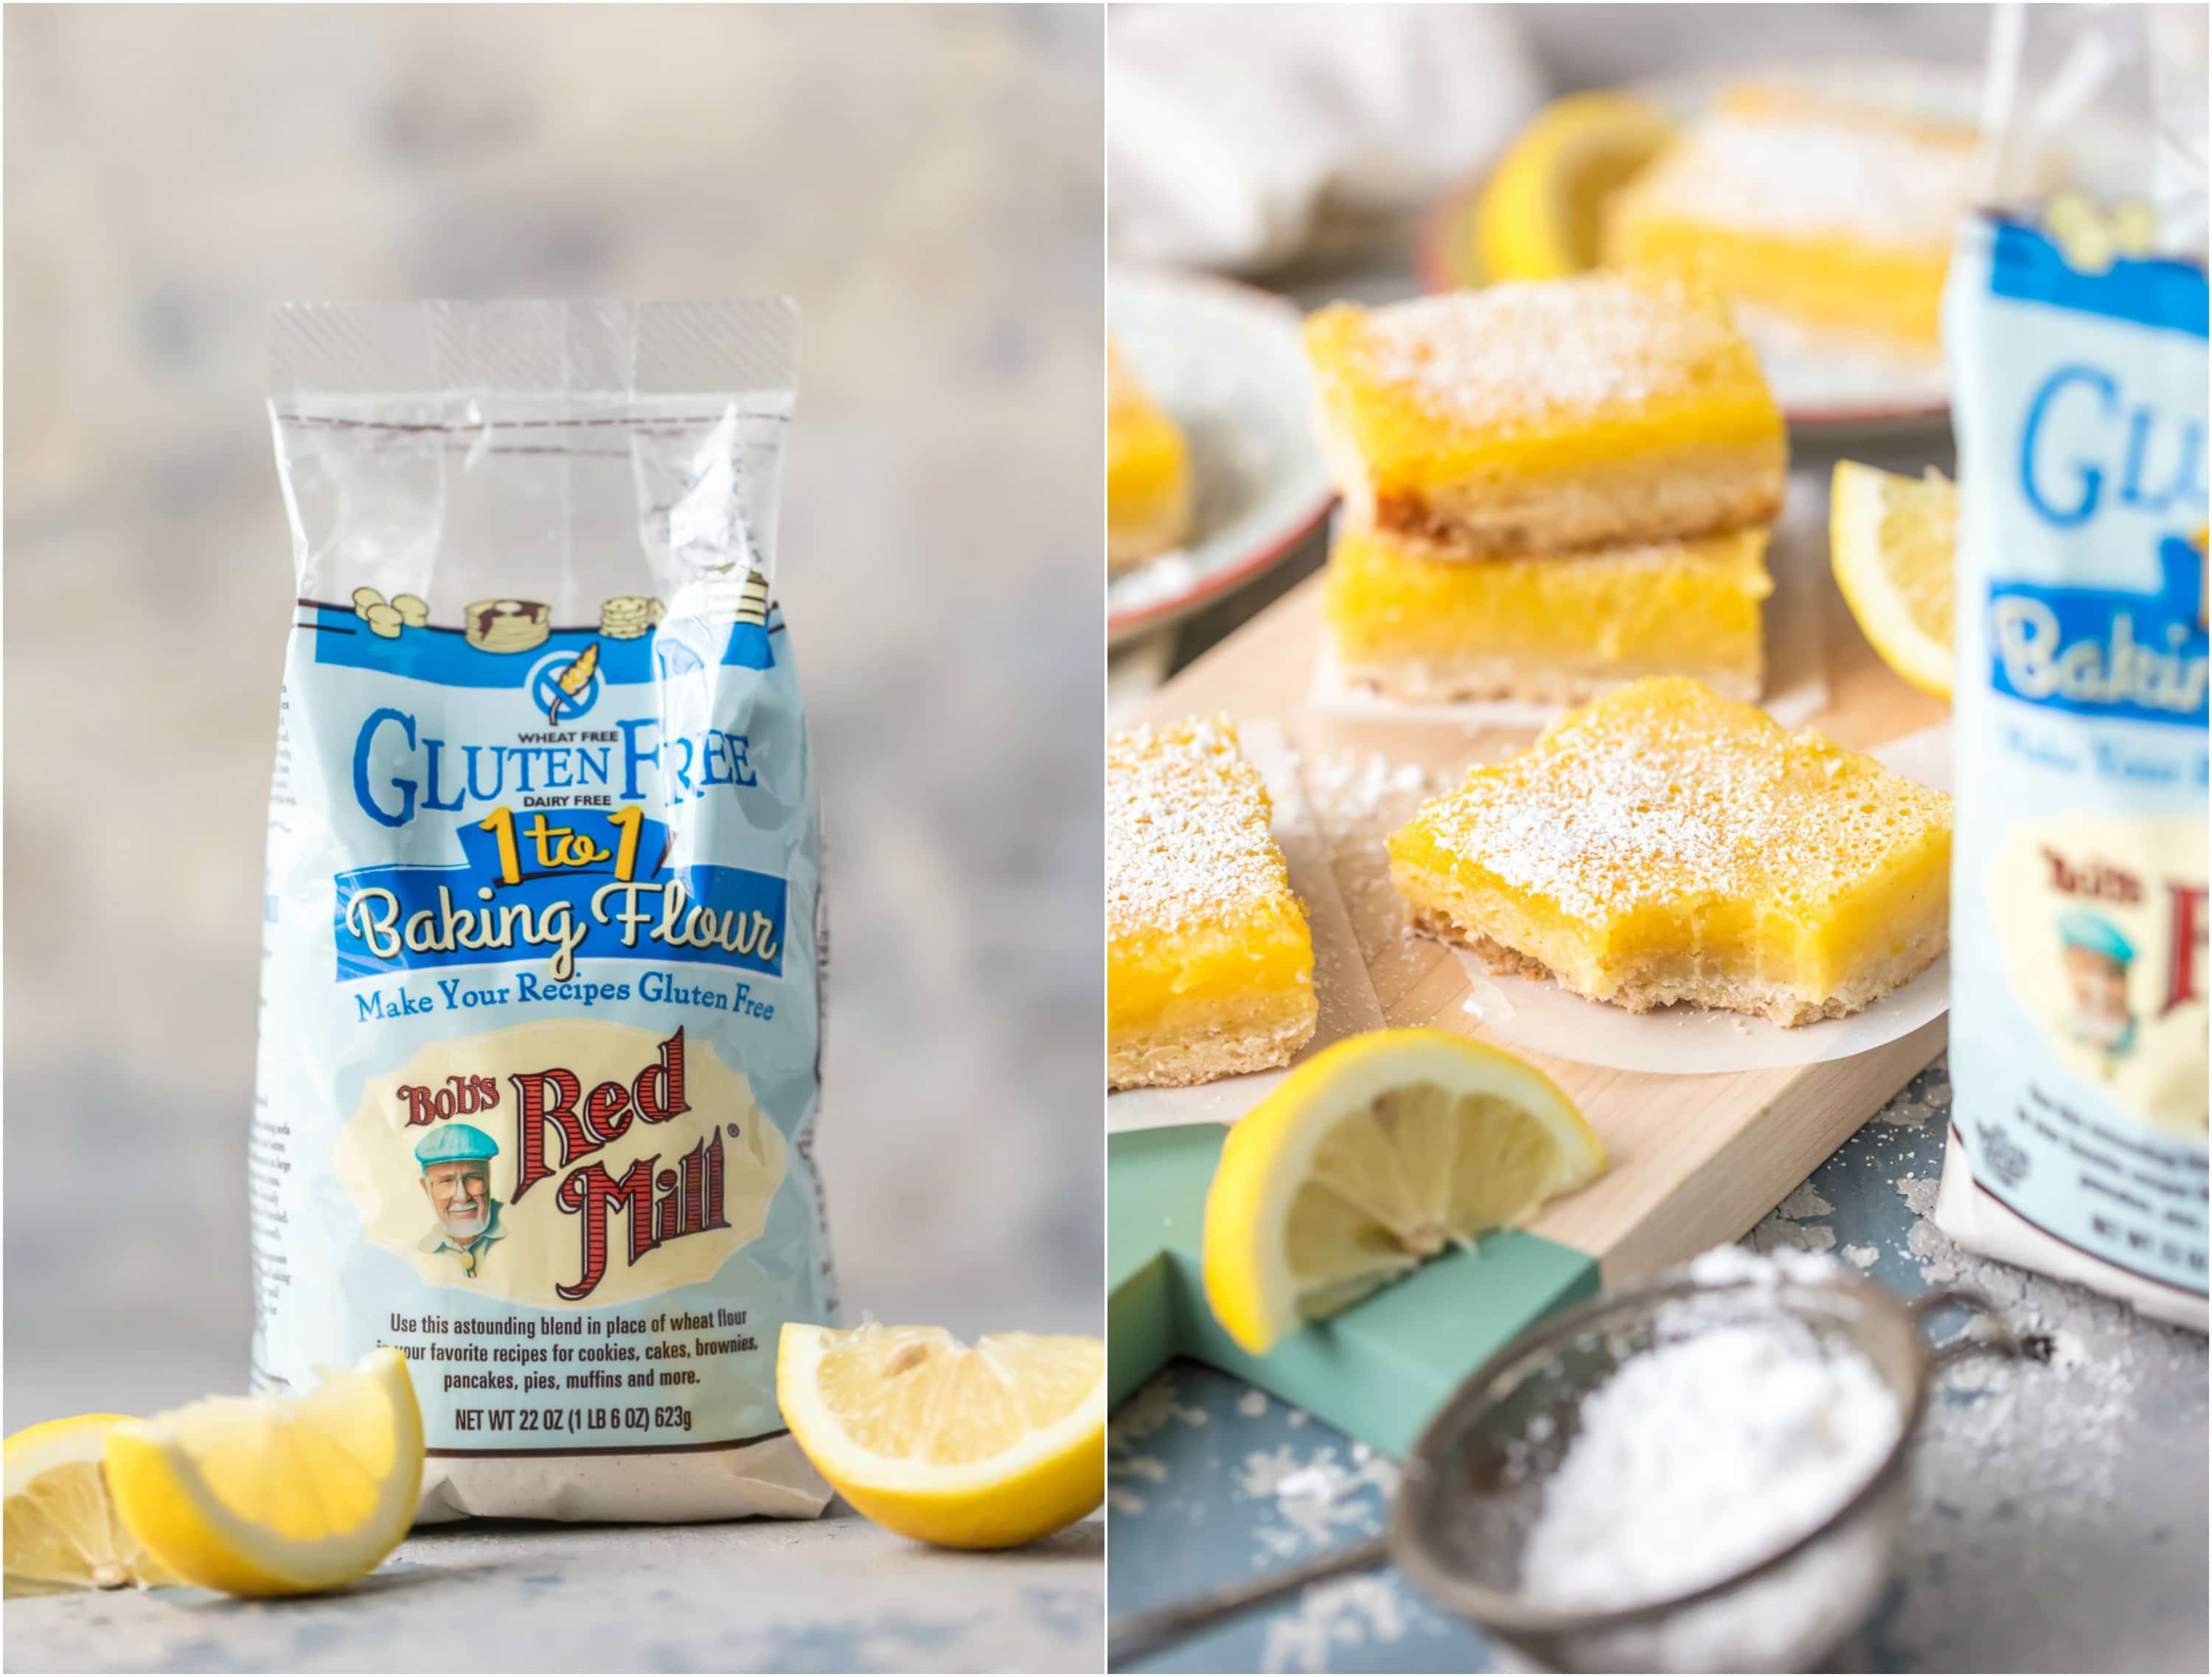 bobs red mill gluten free flour for lemon bars